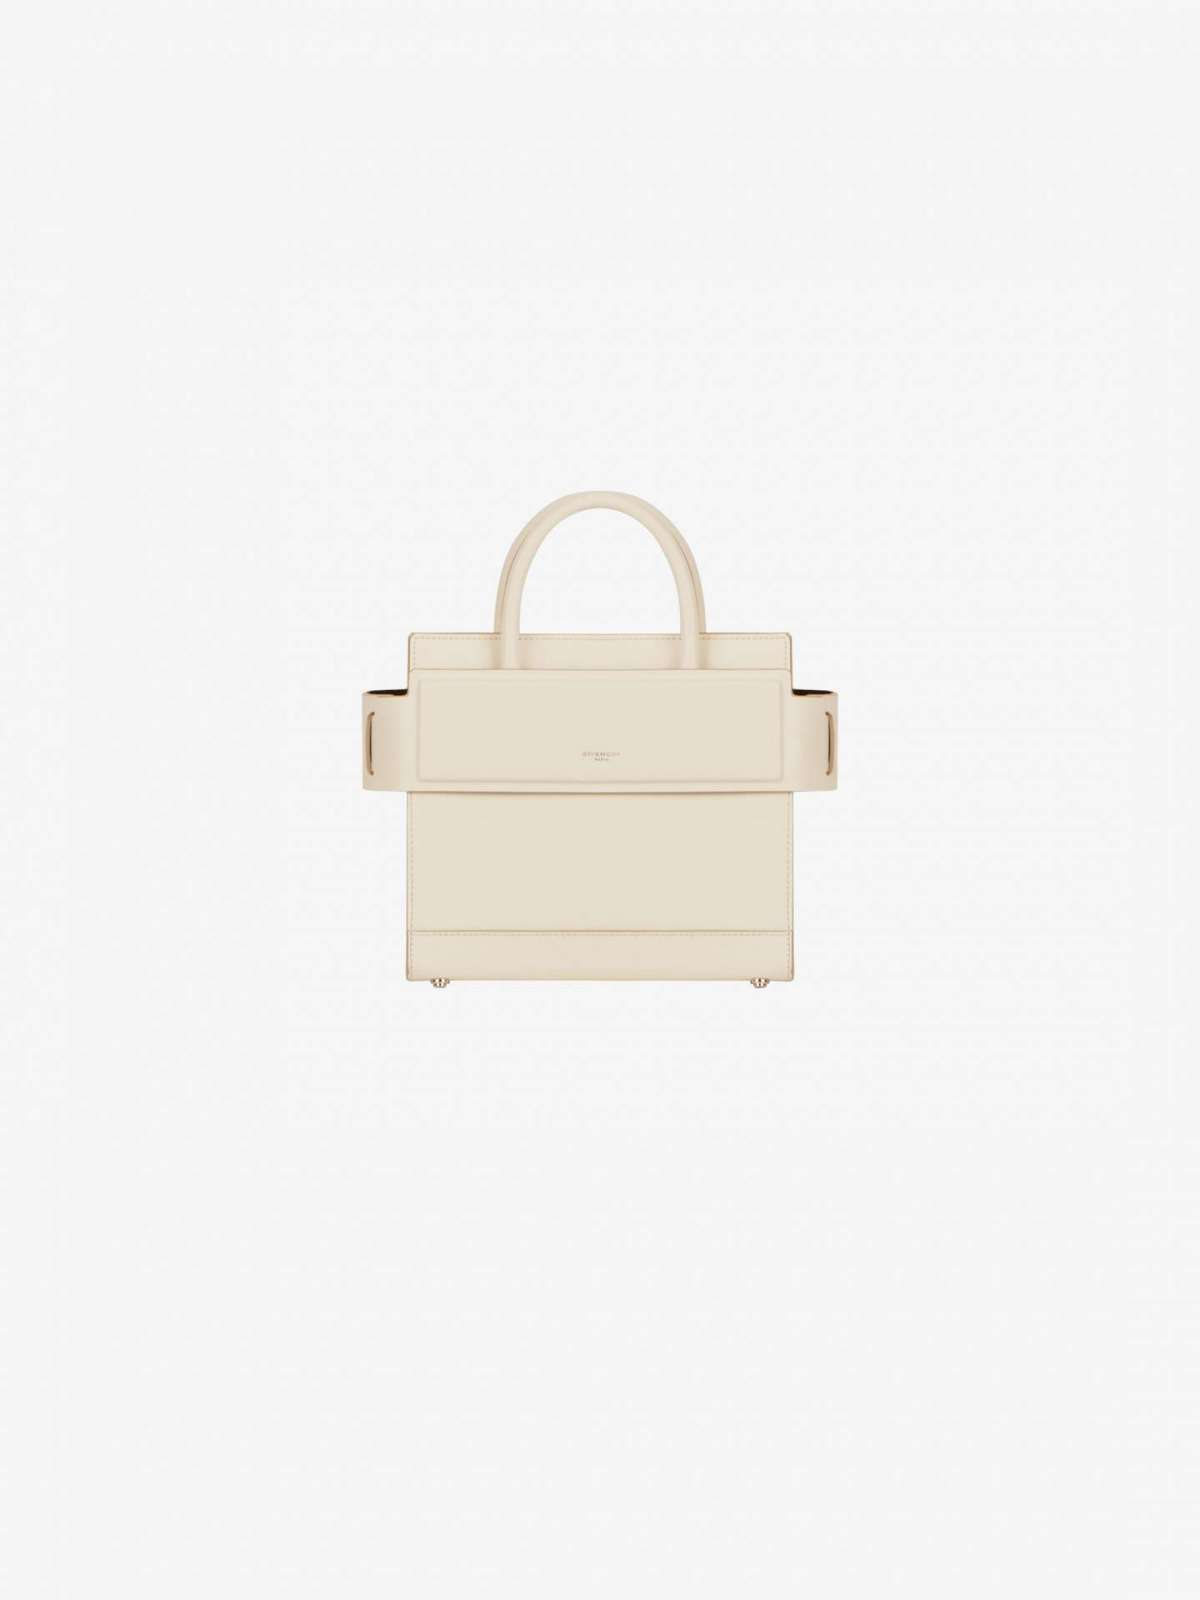 Borsa Horizon mini Givenchy a 1490 euro